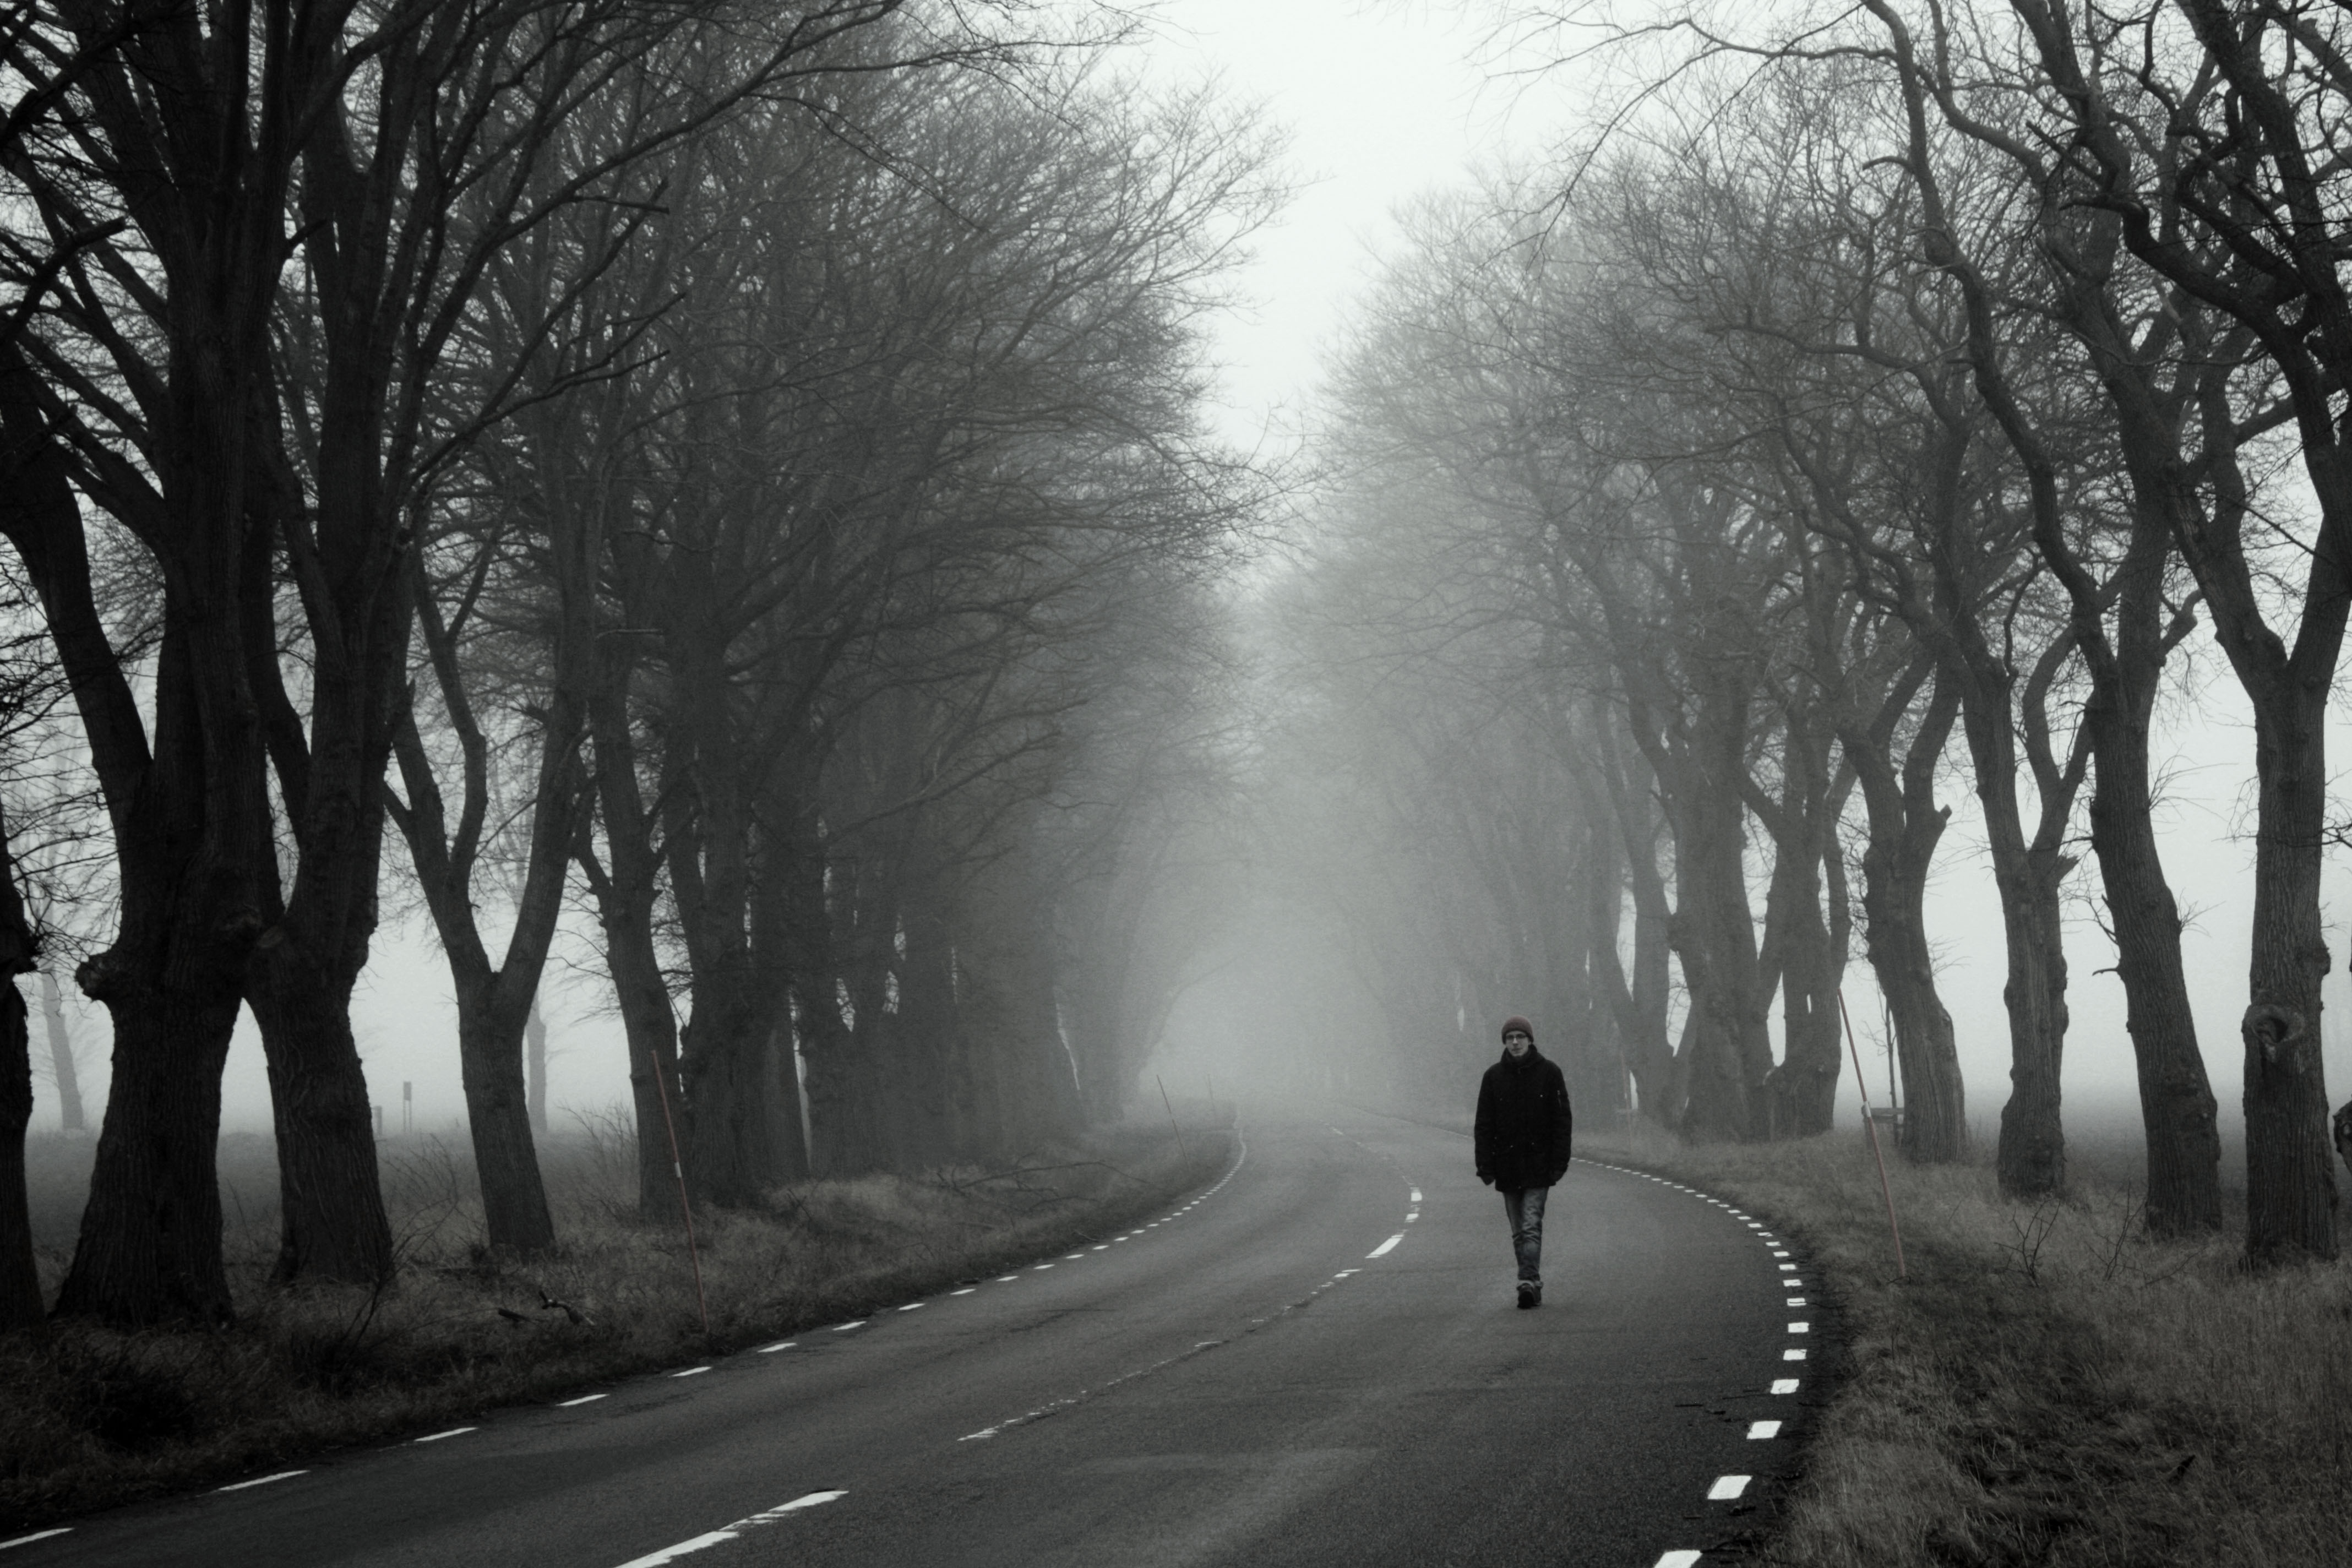 The Lonely Road   Broken Light: A Photography Collective